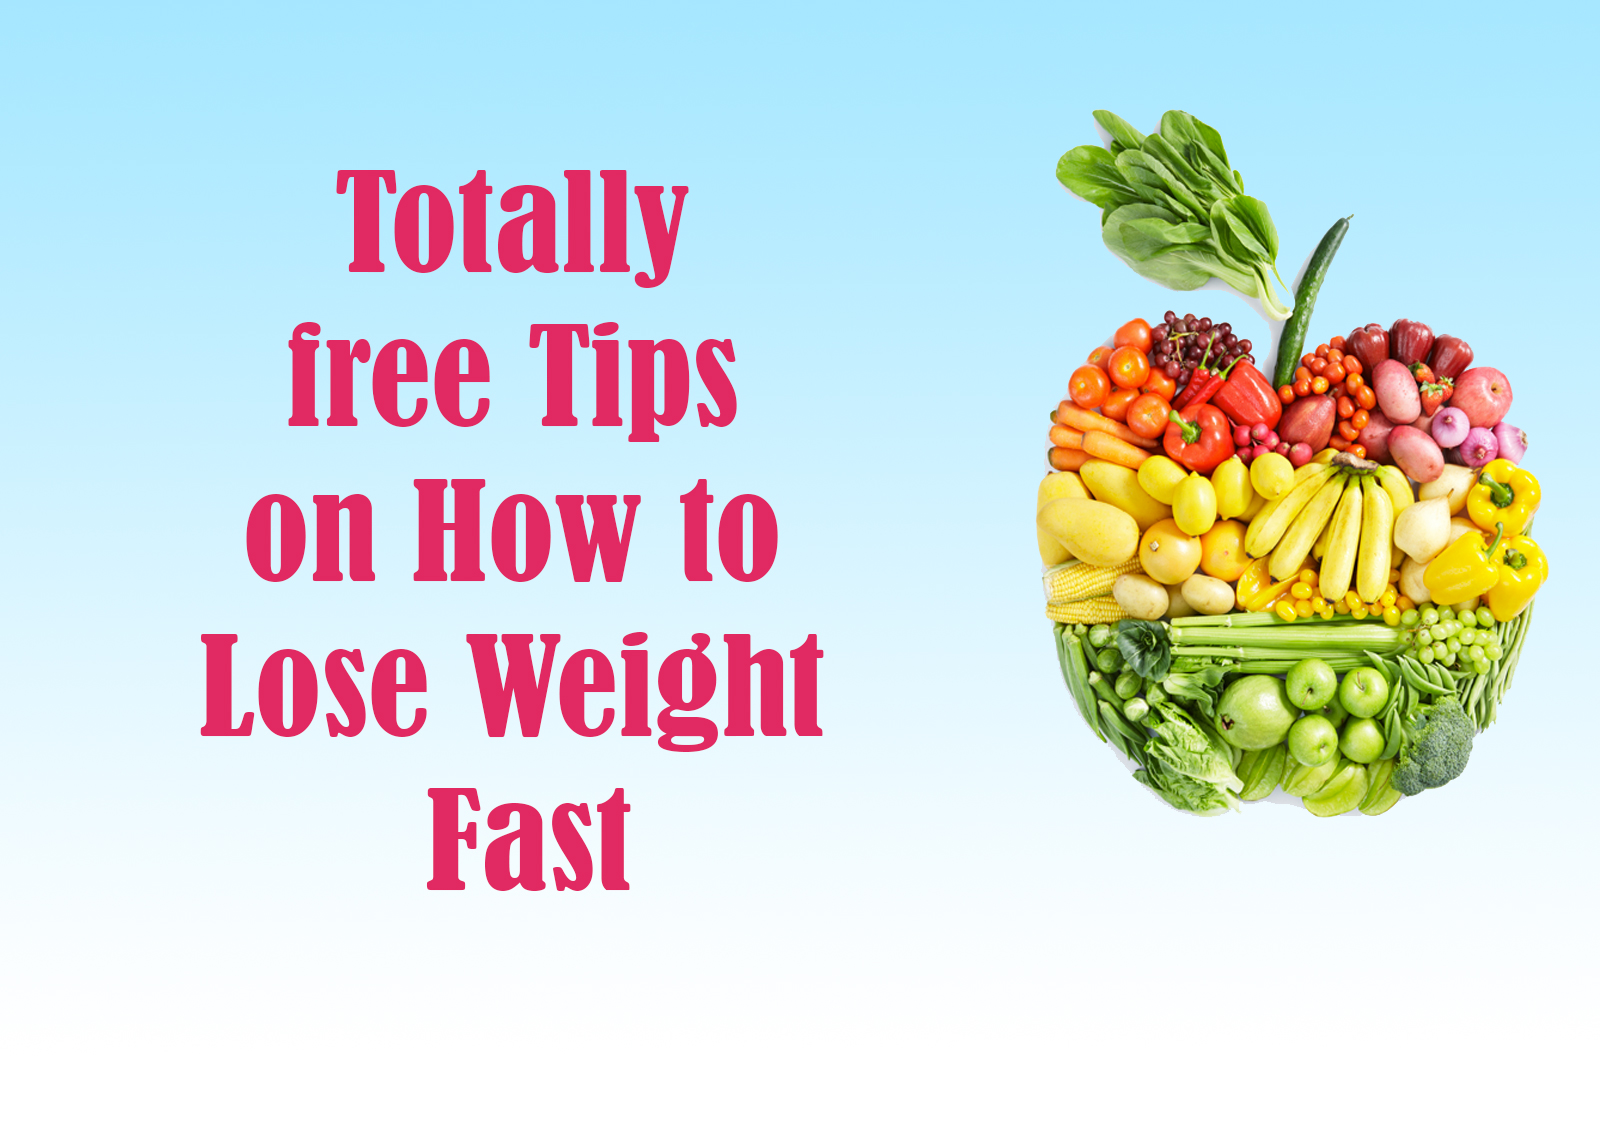 Fast And Keep It Off Are You Fed Up With All The Diet Plans That  Guarantee You The Ideal Method In Order To Lose Weight Rapidly But With No  Outcomes?